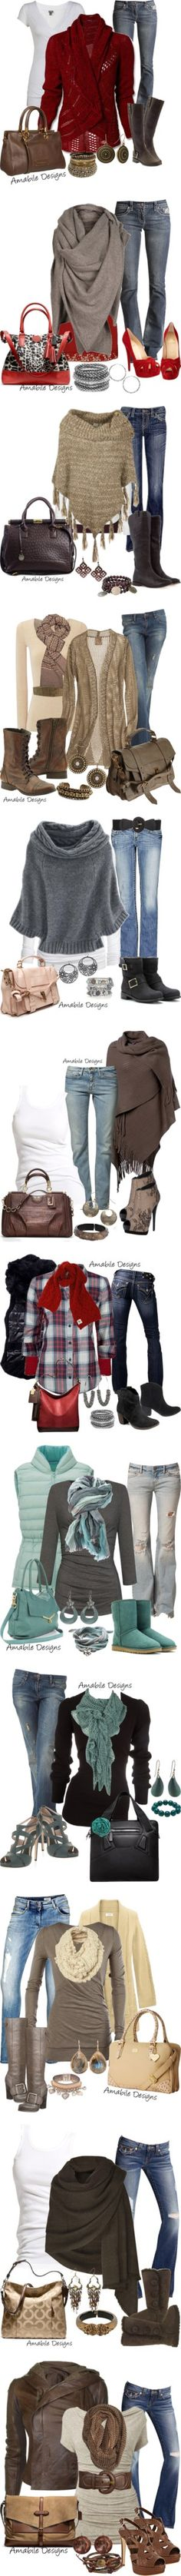 """""""Casual Wear (colder weather)"""" by amabiledesigns ❤ liked on Polyvore"""